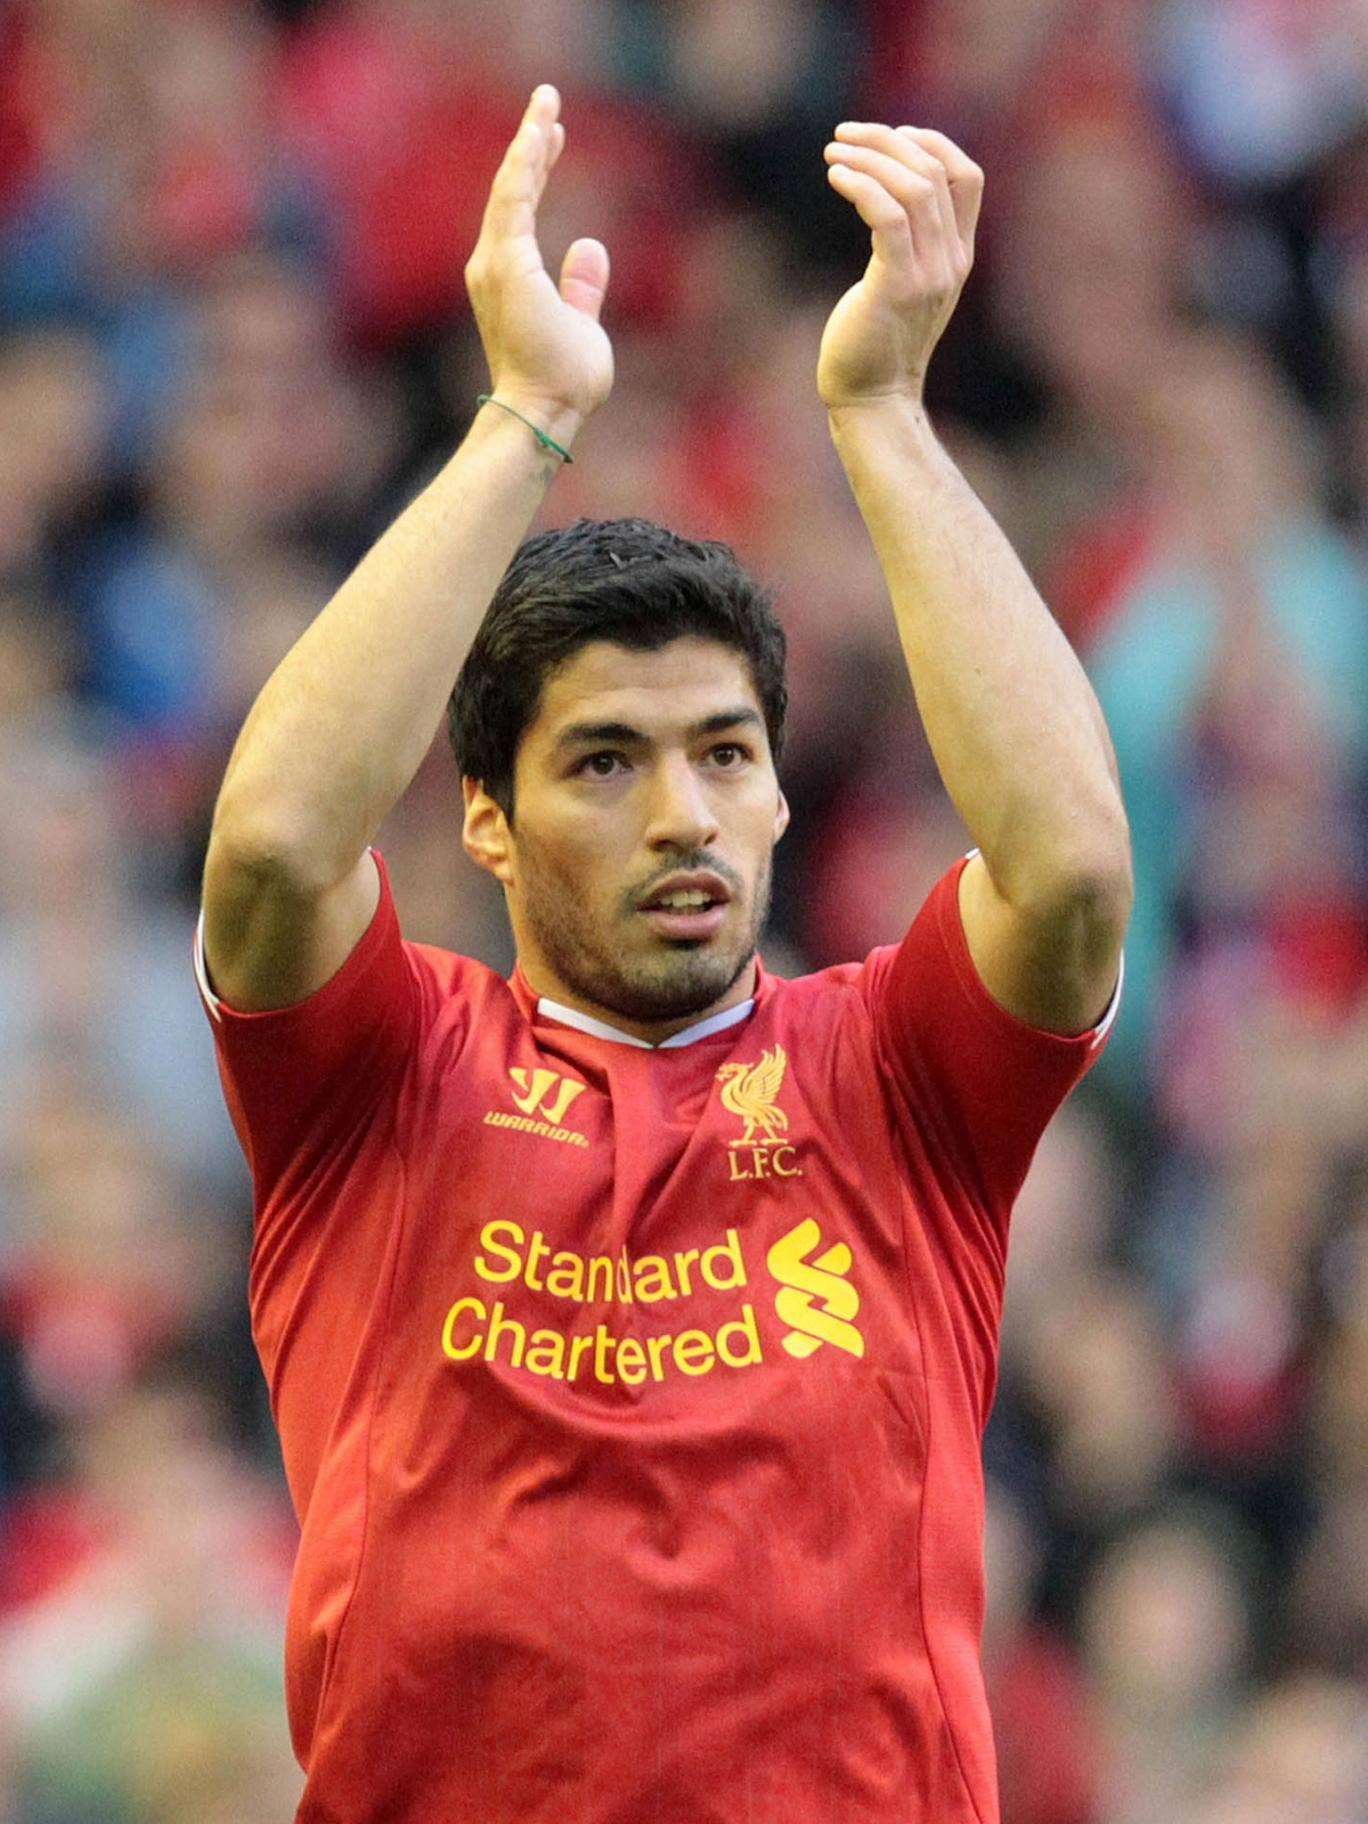 Luis Suarez has put a difficult summer well behind him